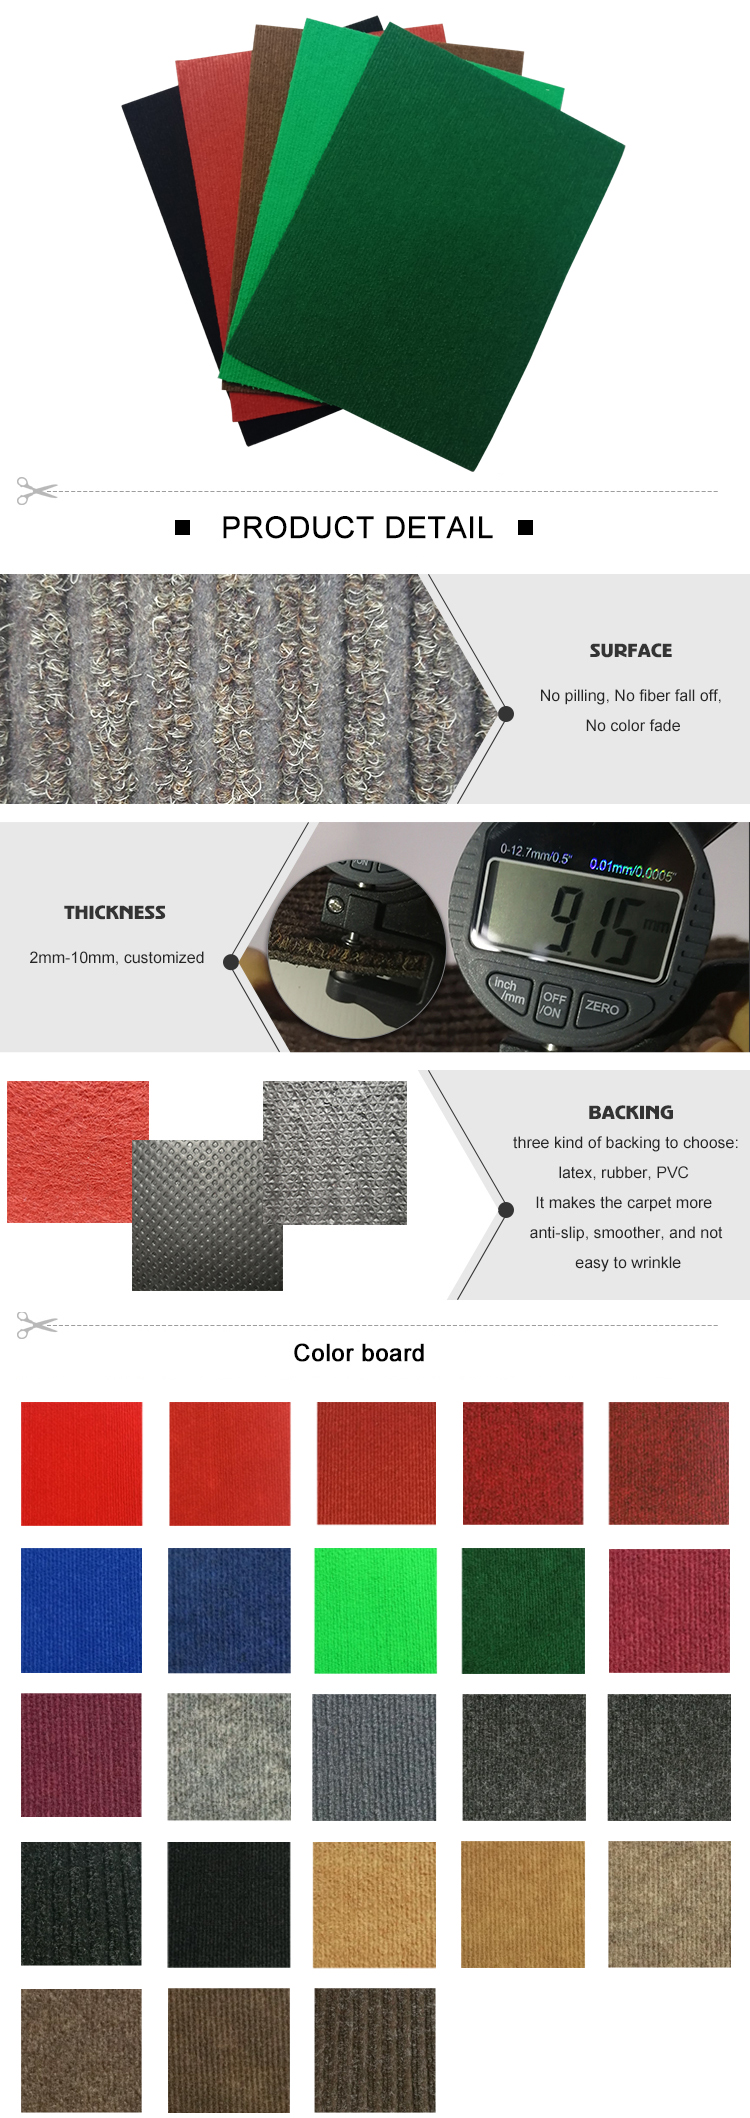 Laiwu colourful indoor outdoor polyester exhibition carpet rib carpet needle punched carpet